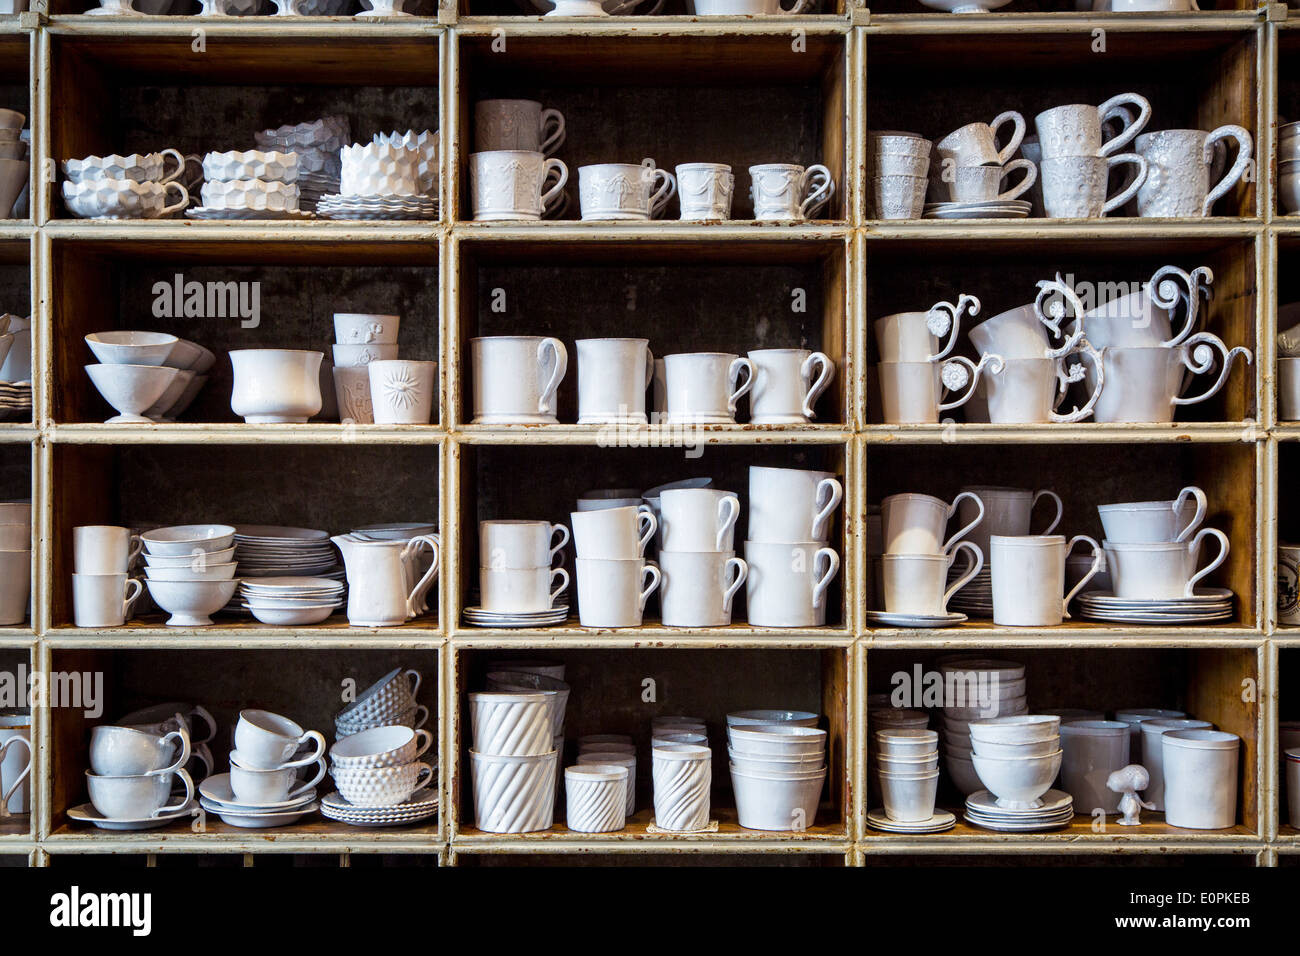 hand made pottery by designer astier de villatte on display at their stock photo 69339715 alamy. Black Bedroom Furniture Sets. Home Design Ideas